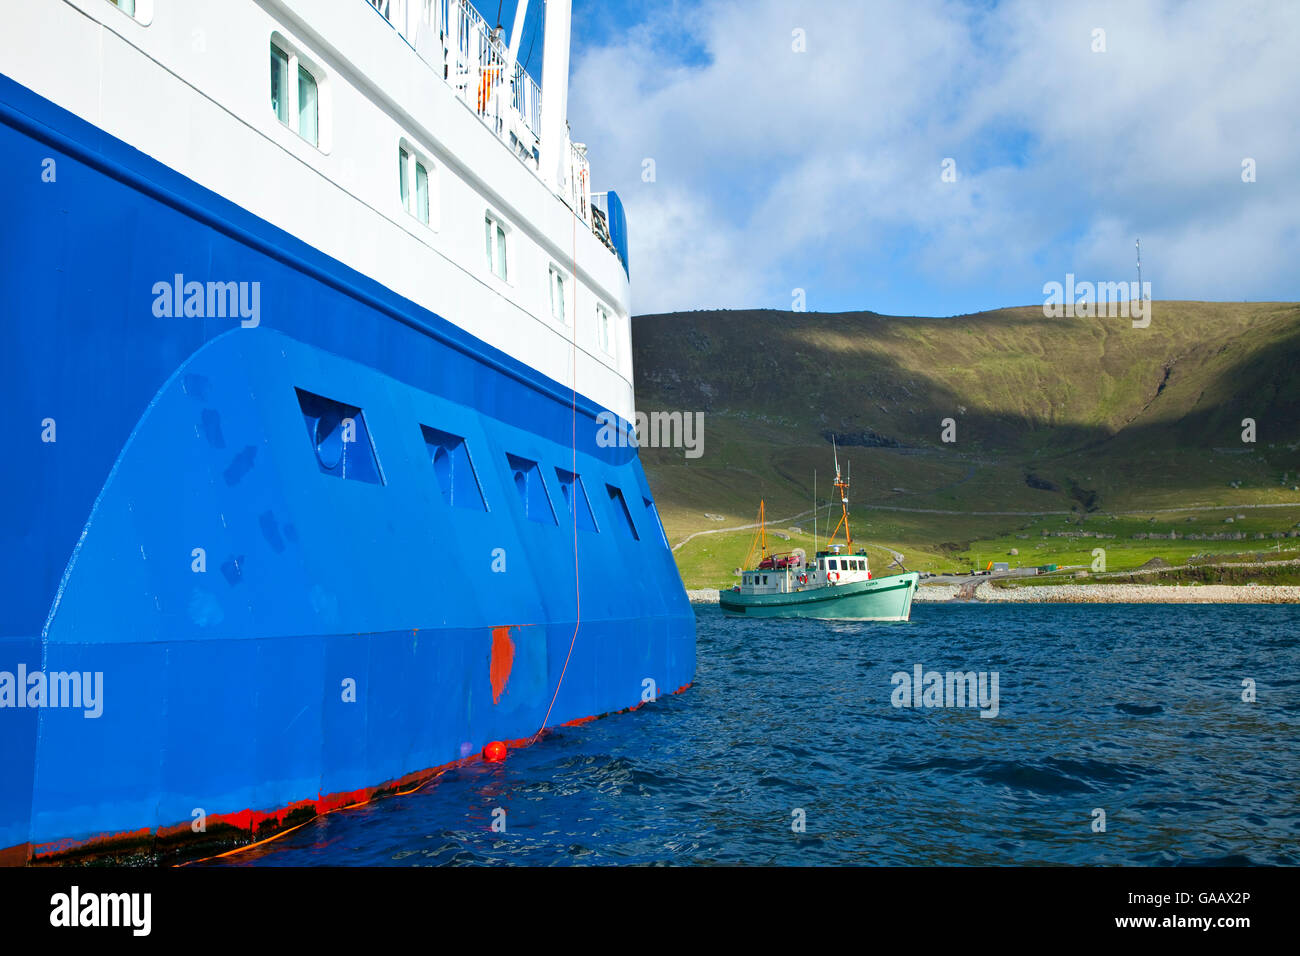 'Quest' ferry landing in Village Bay, St. Kilda, Outer Hebrides, Scotland, UK. All non-editorial uses must - Stock Image